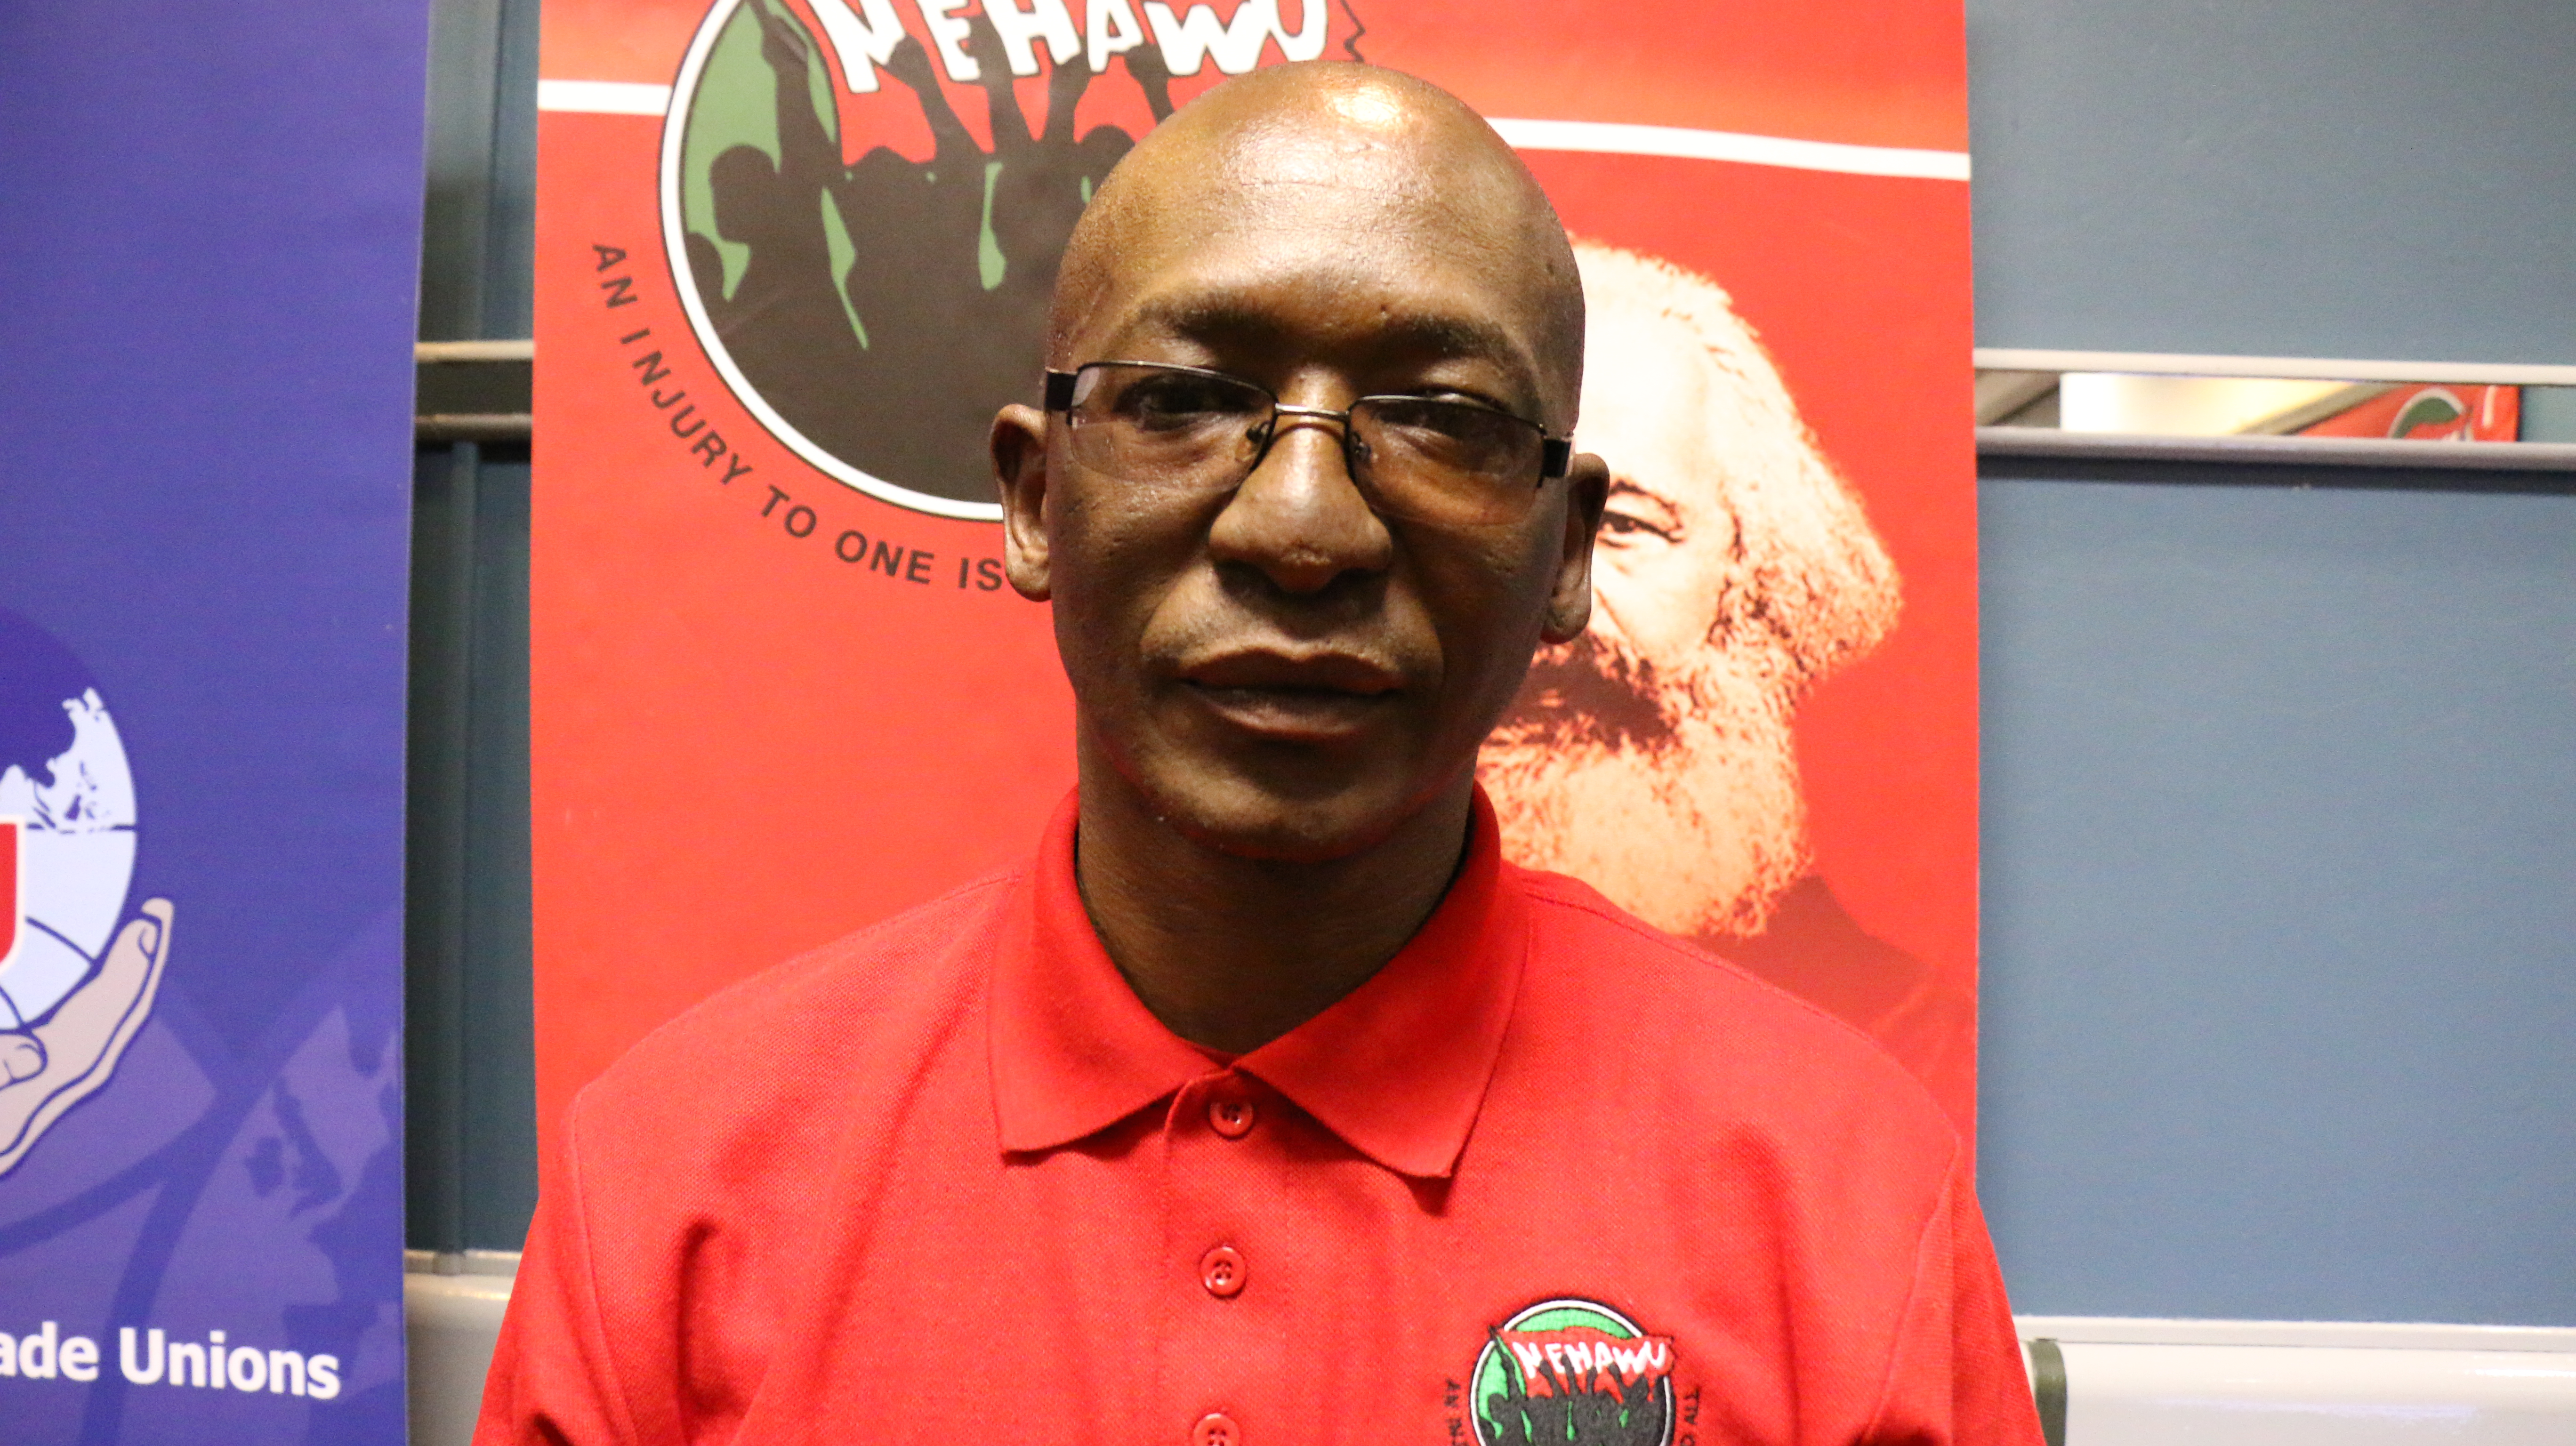 The Free State Provincial Deputy Chairperson - Chabaseile Makume